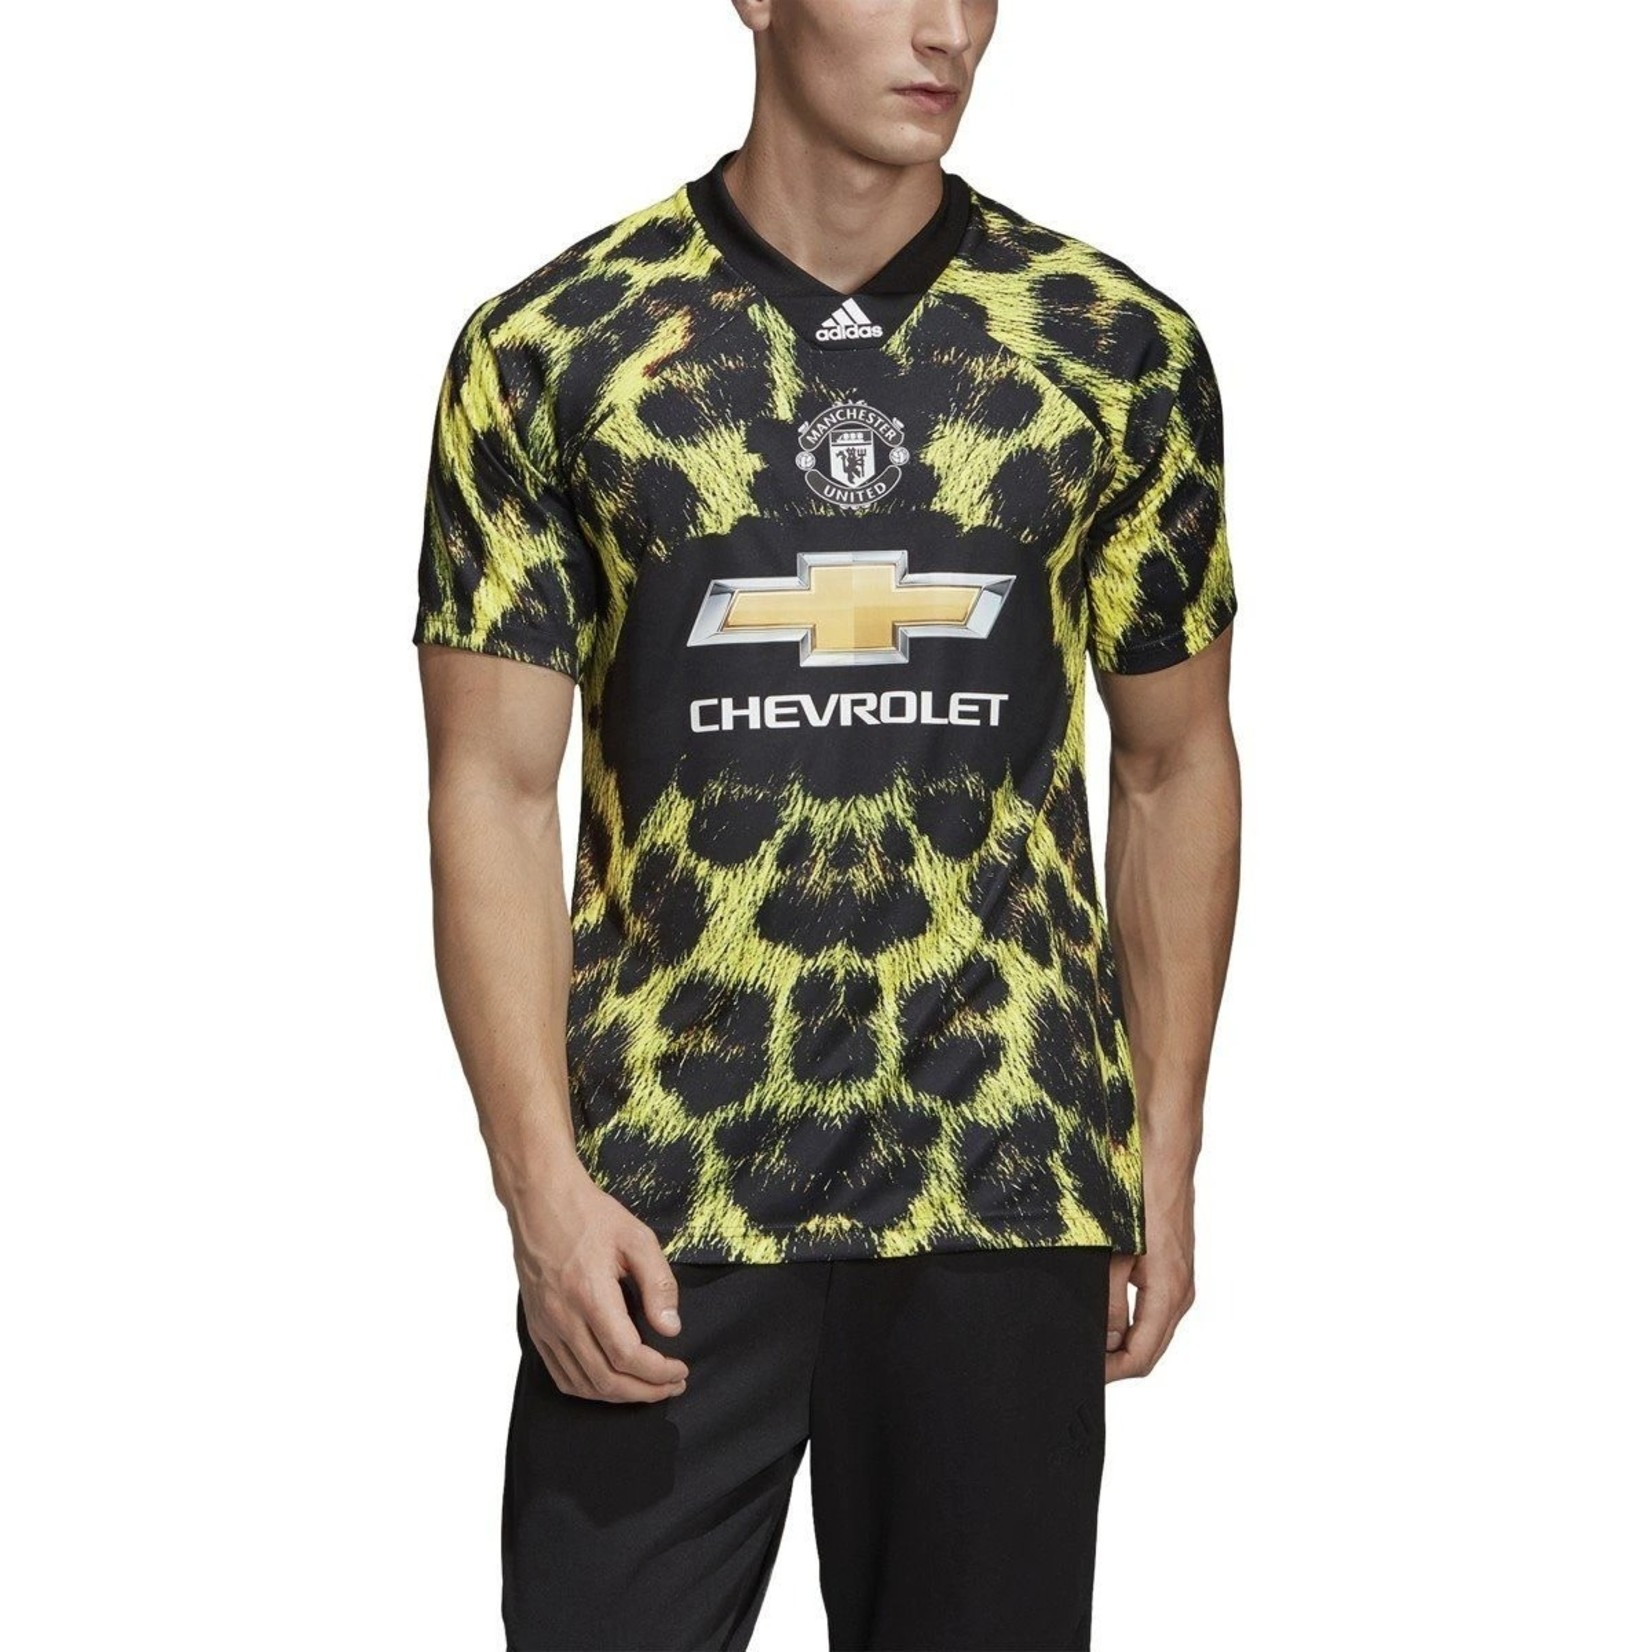 ADIDAS MANCHESTER UNITED EA SPORTS JERSEY (BLACK/YELLOW)